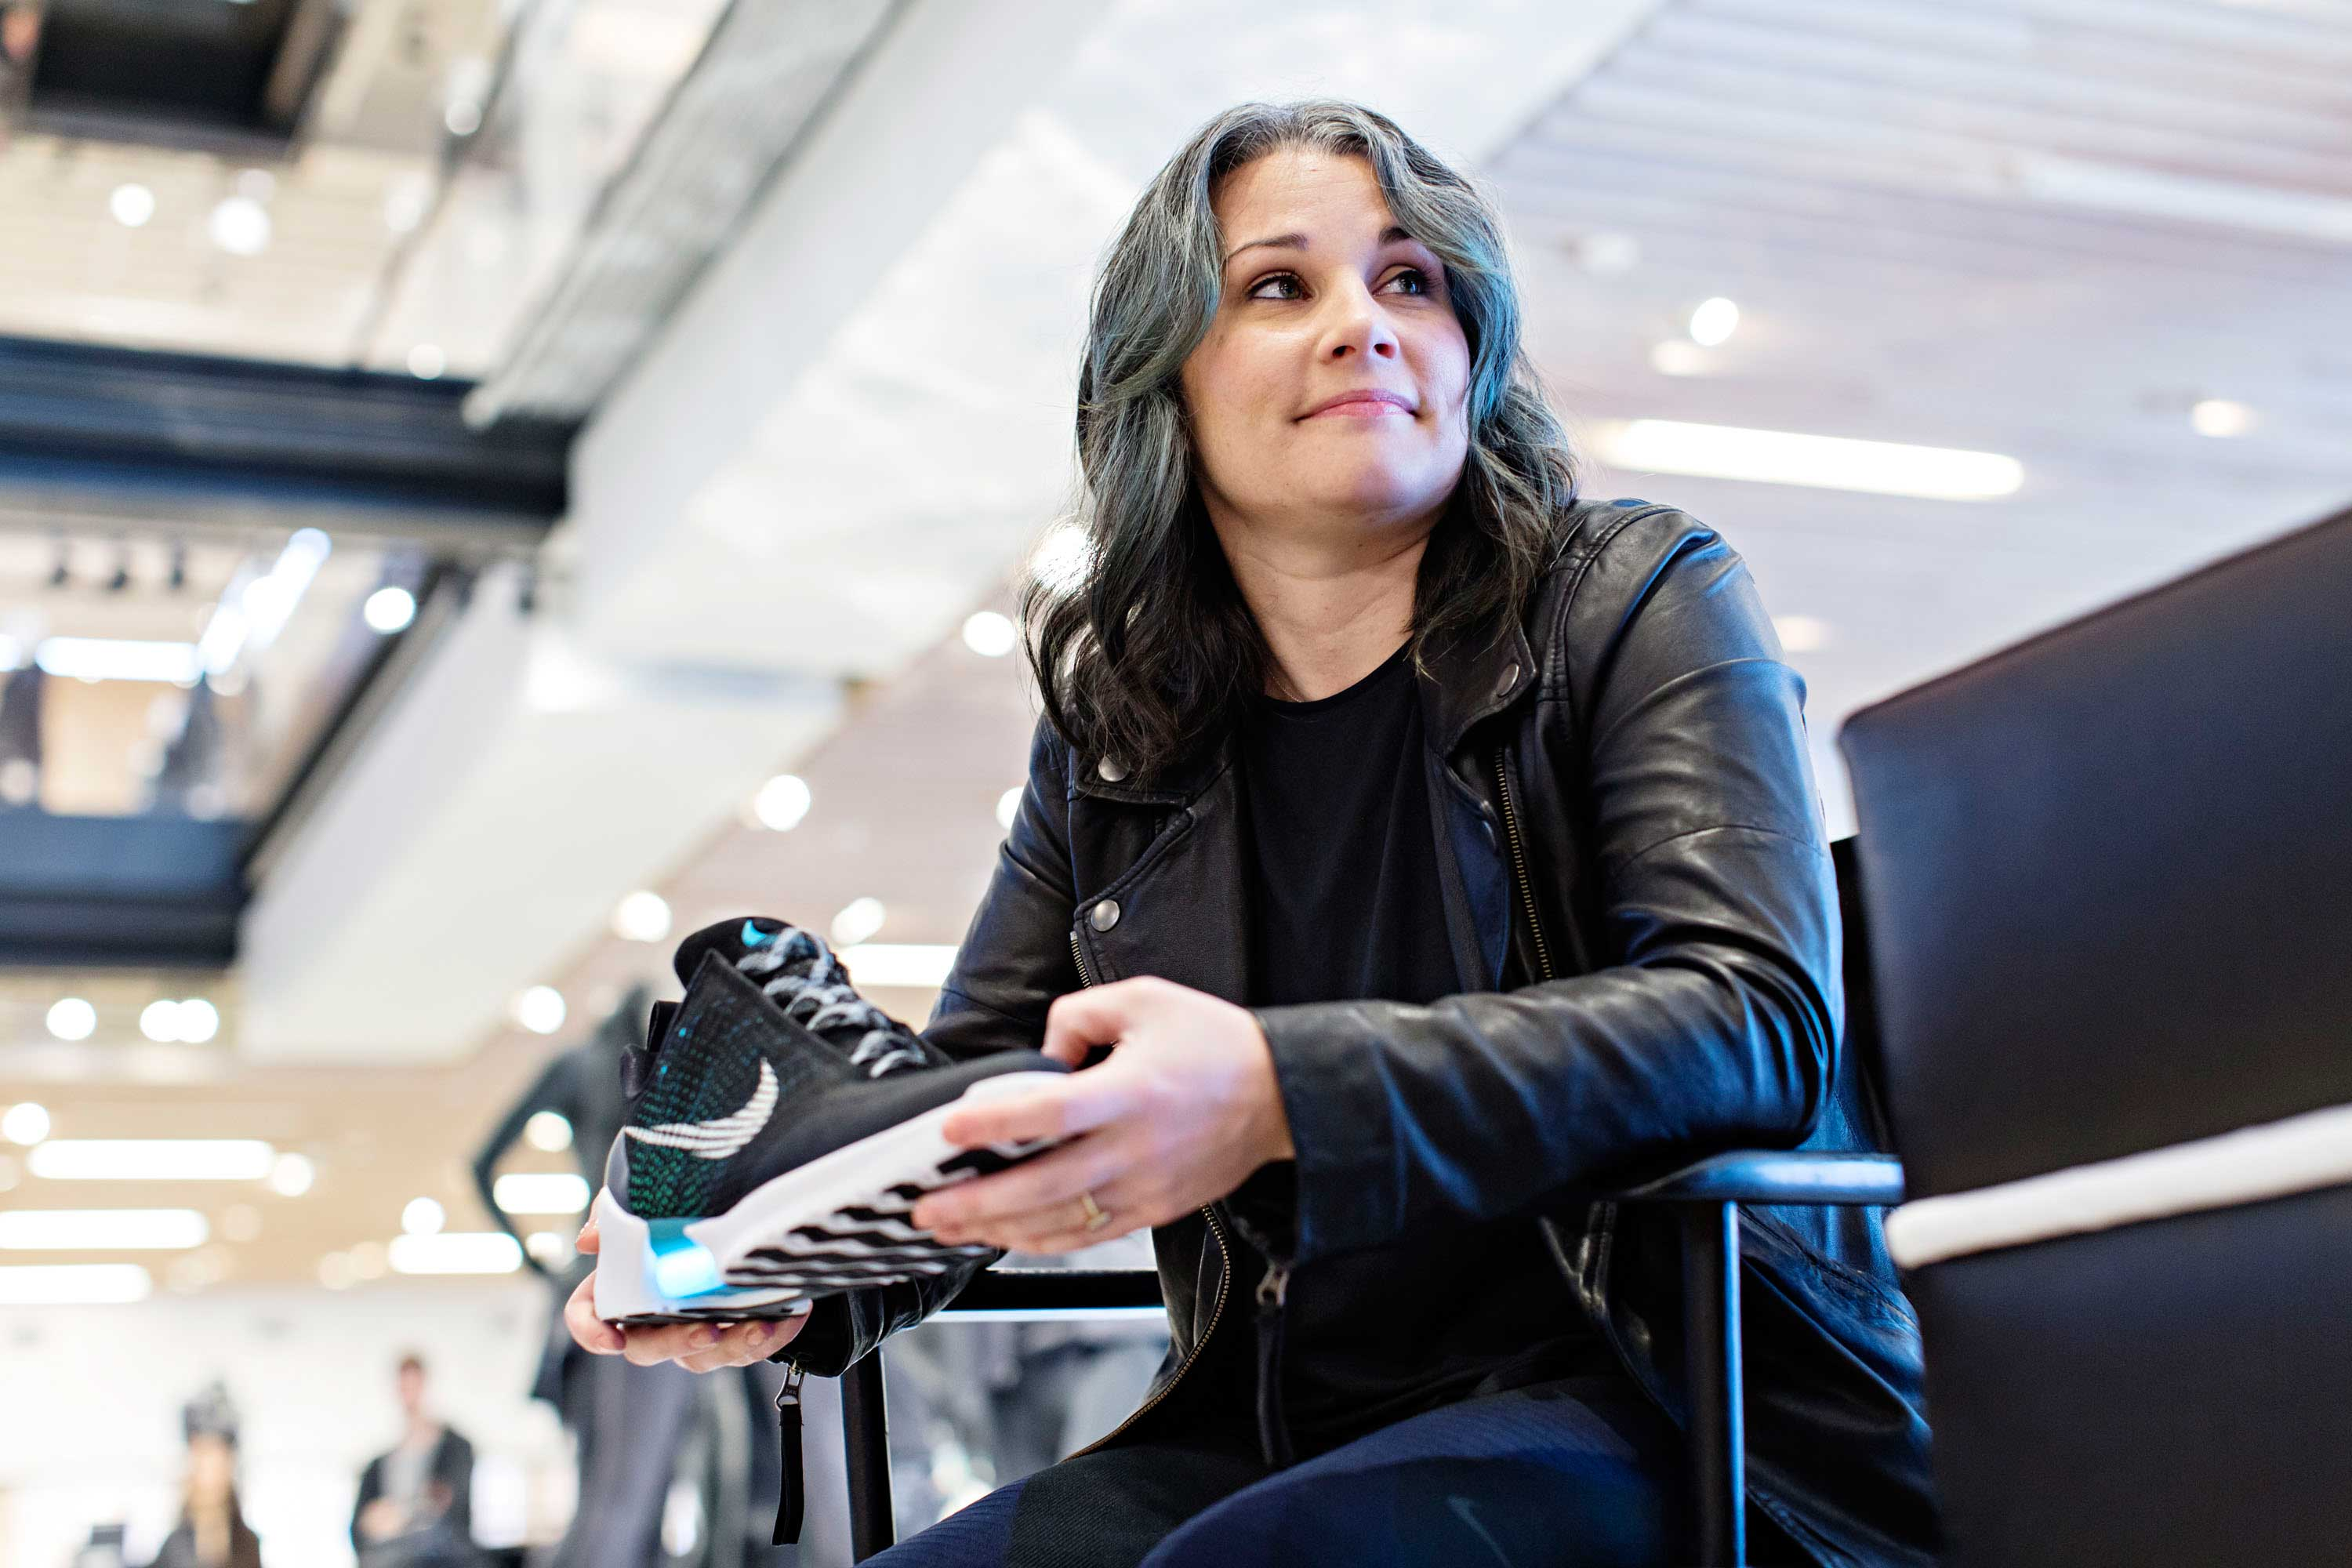 Nike HyperAdapt designer Tiffany Beers with the HyperAdapt 1.0 in New York. Photo courtesy of Nike.